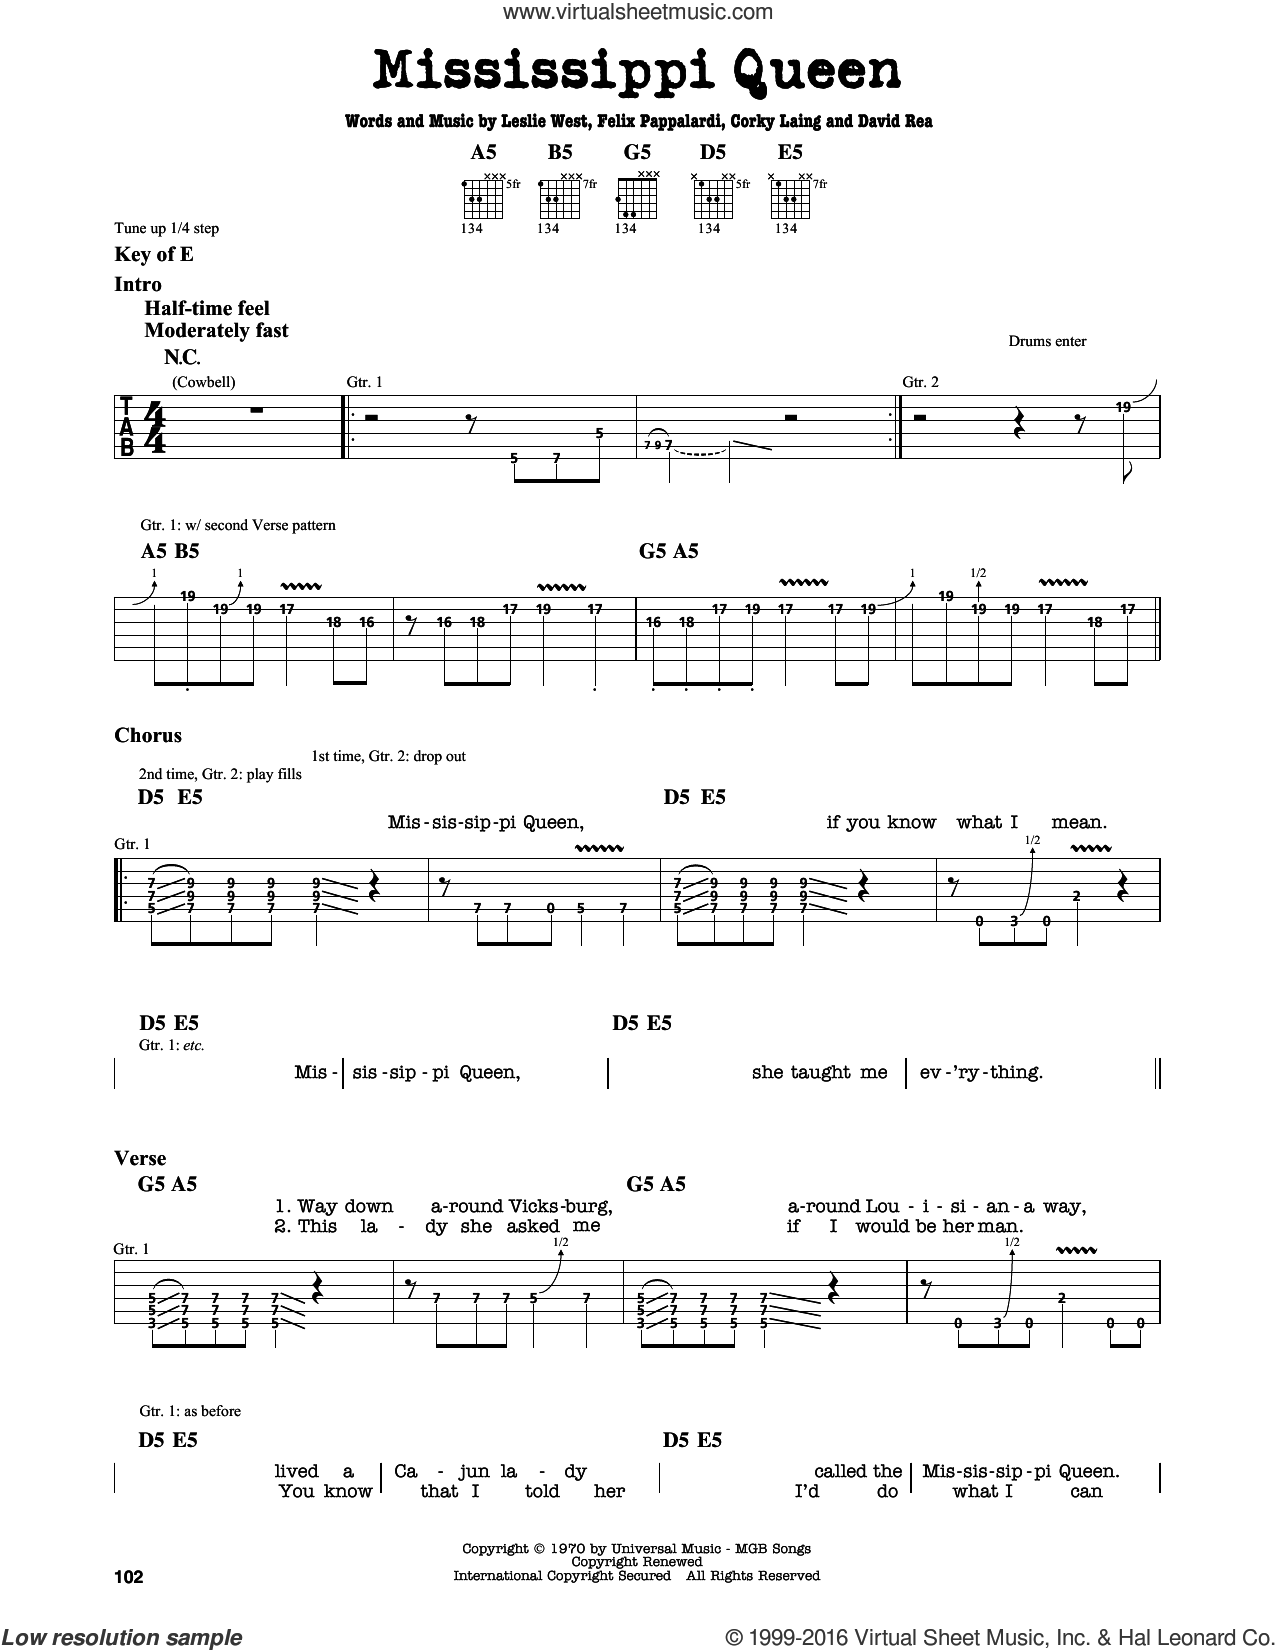 Mississippi Queen sheet music for guitar solo (lead sheet) by Leslie West. Score Image Preview.